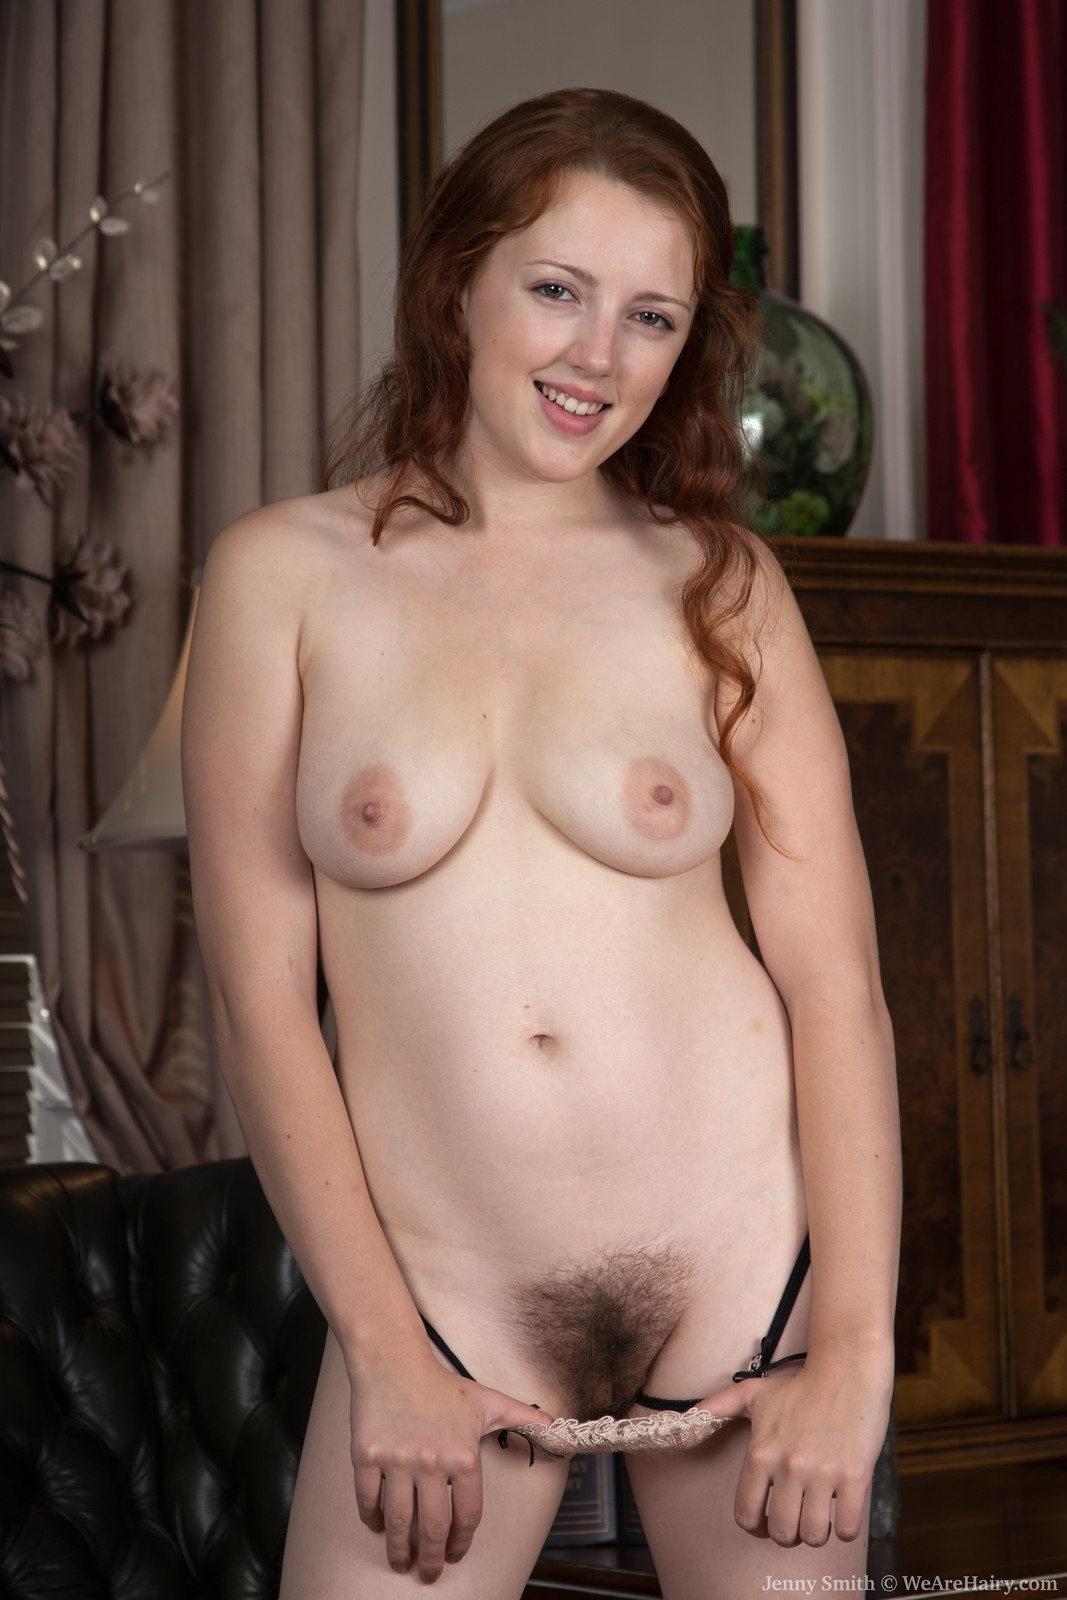 Redhaired slut Jenny Smith hairy pussy fun at reception